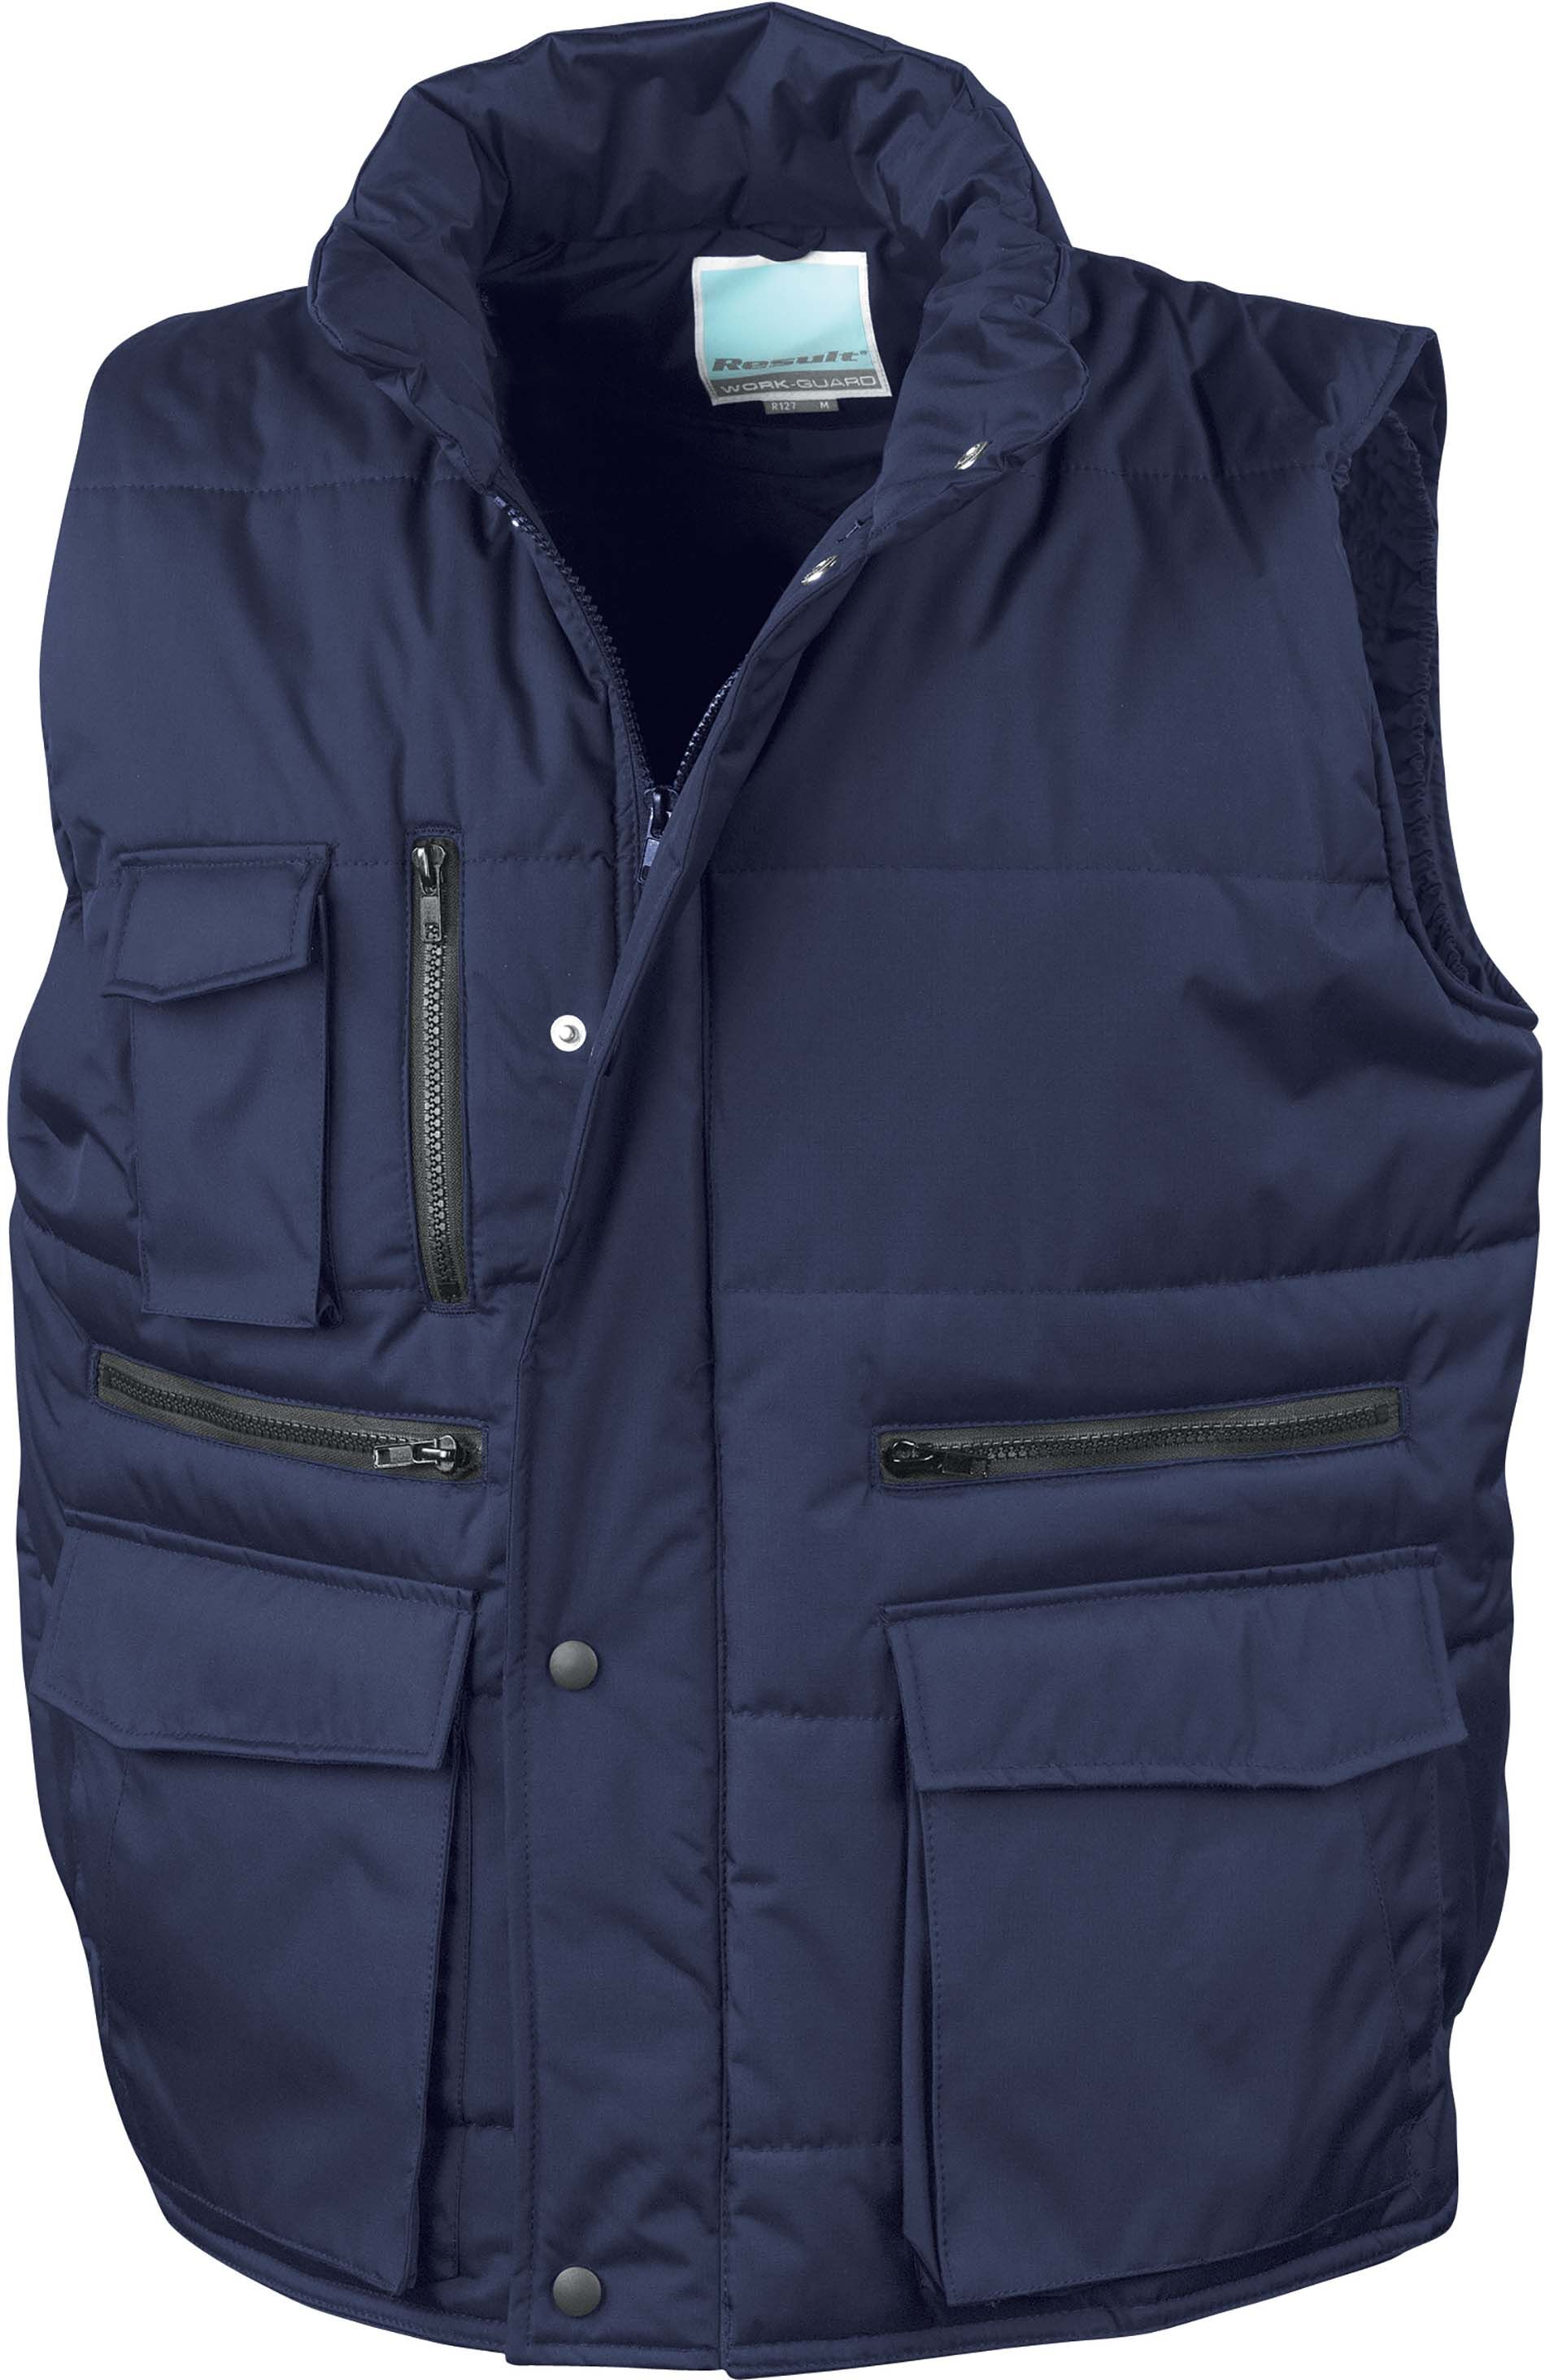 Gilet sans manche multipoches Navy